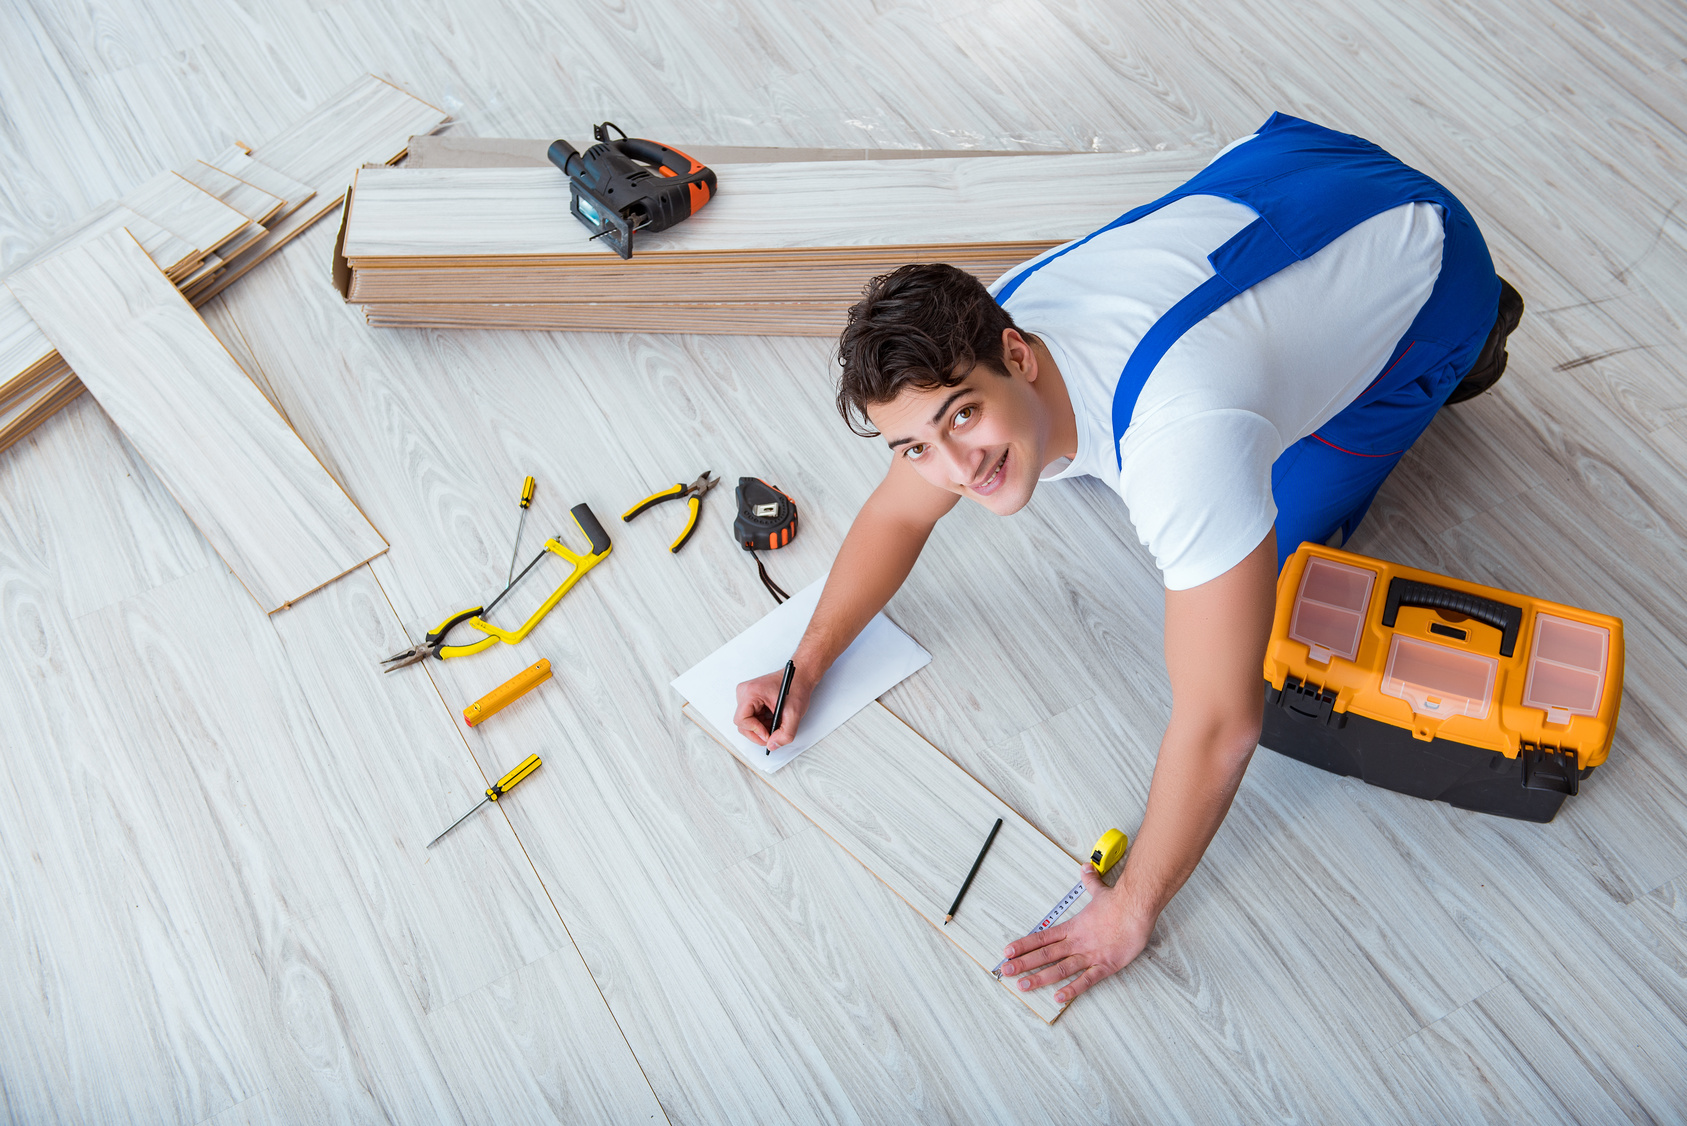 Professional flooring installation in a Florida home from Flooring Express